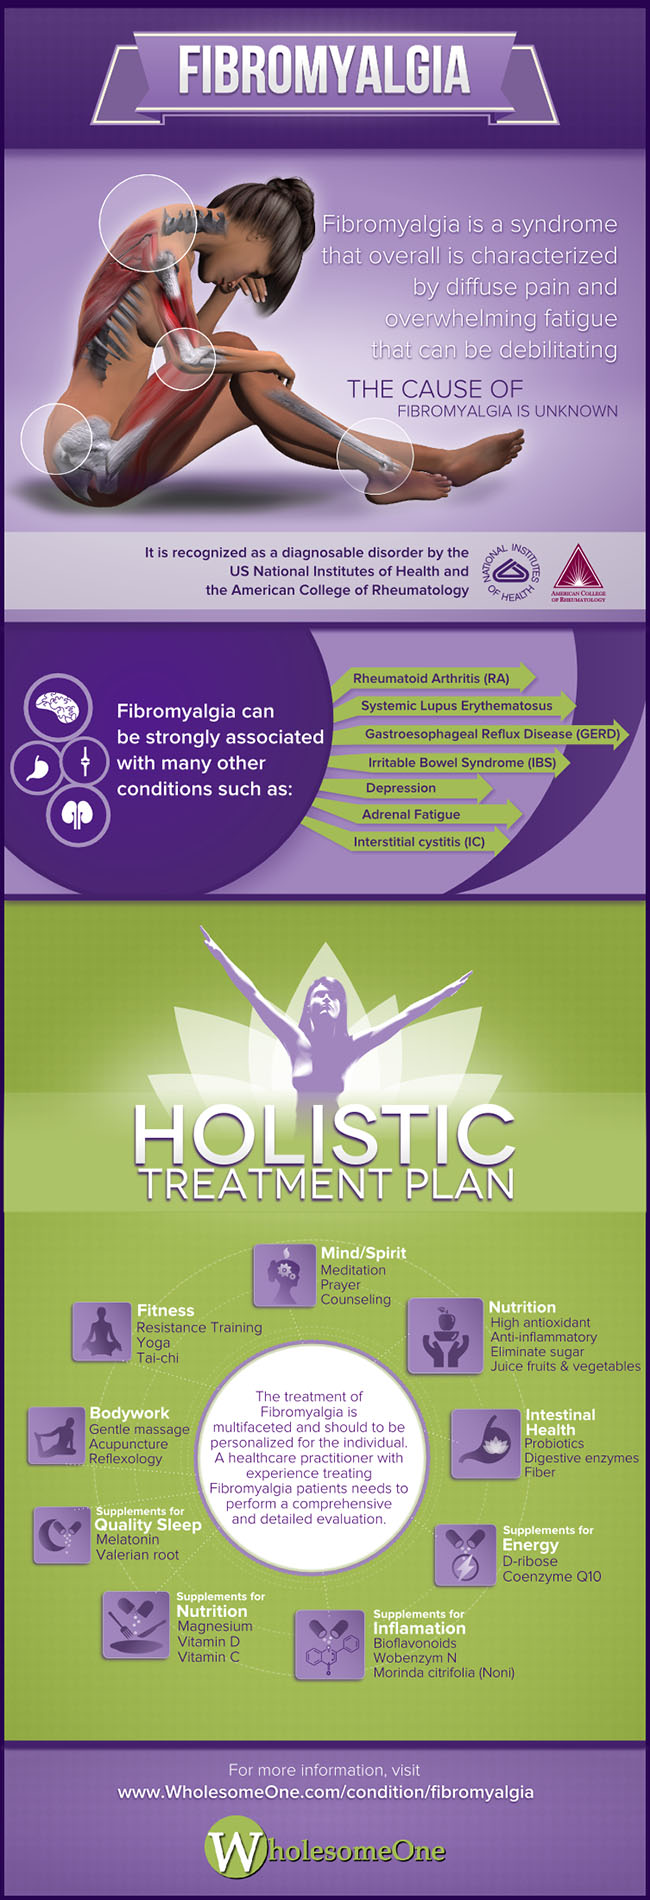 Fibromyalgia Holistic Treatment Plan